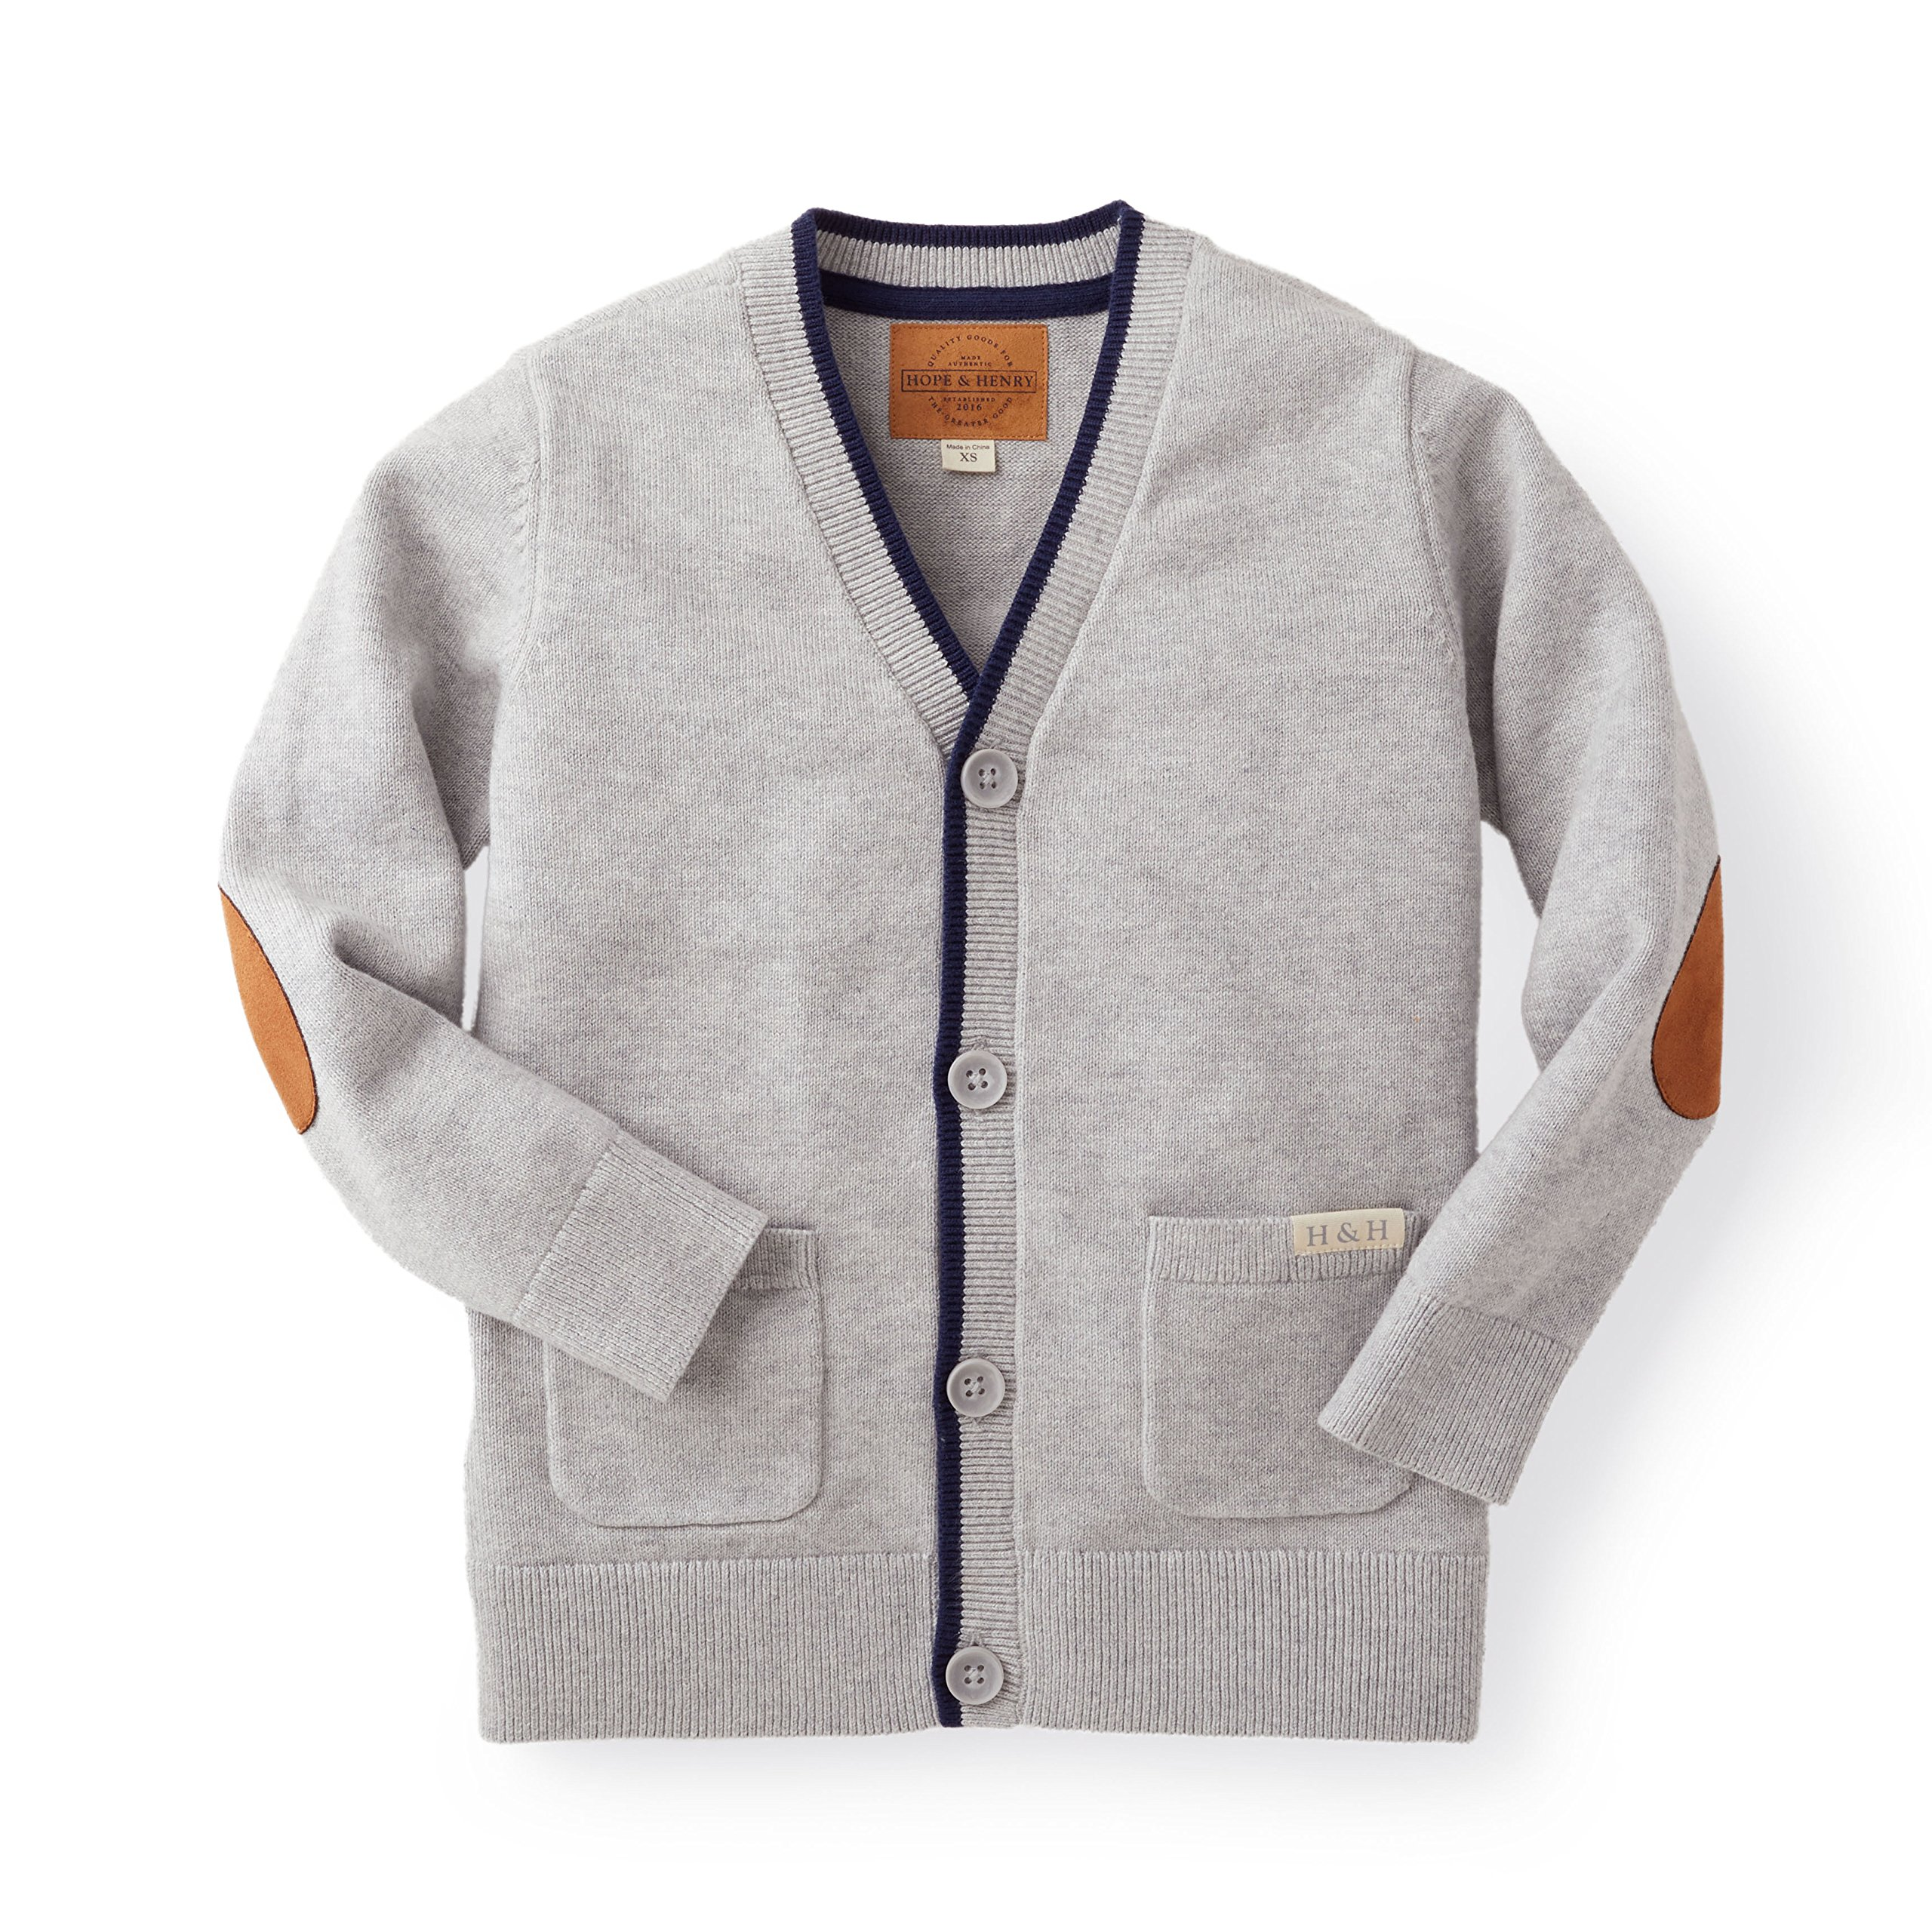 Hope & Henry Boys' Grey Cardigan Sweater Made with Organic Cotton